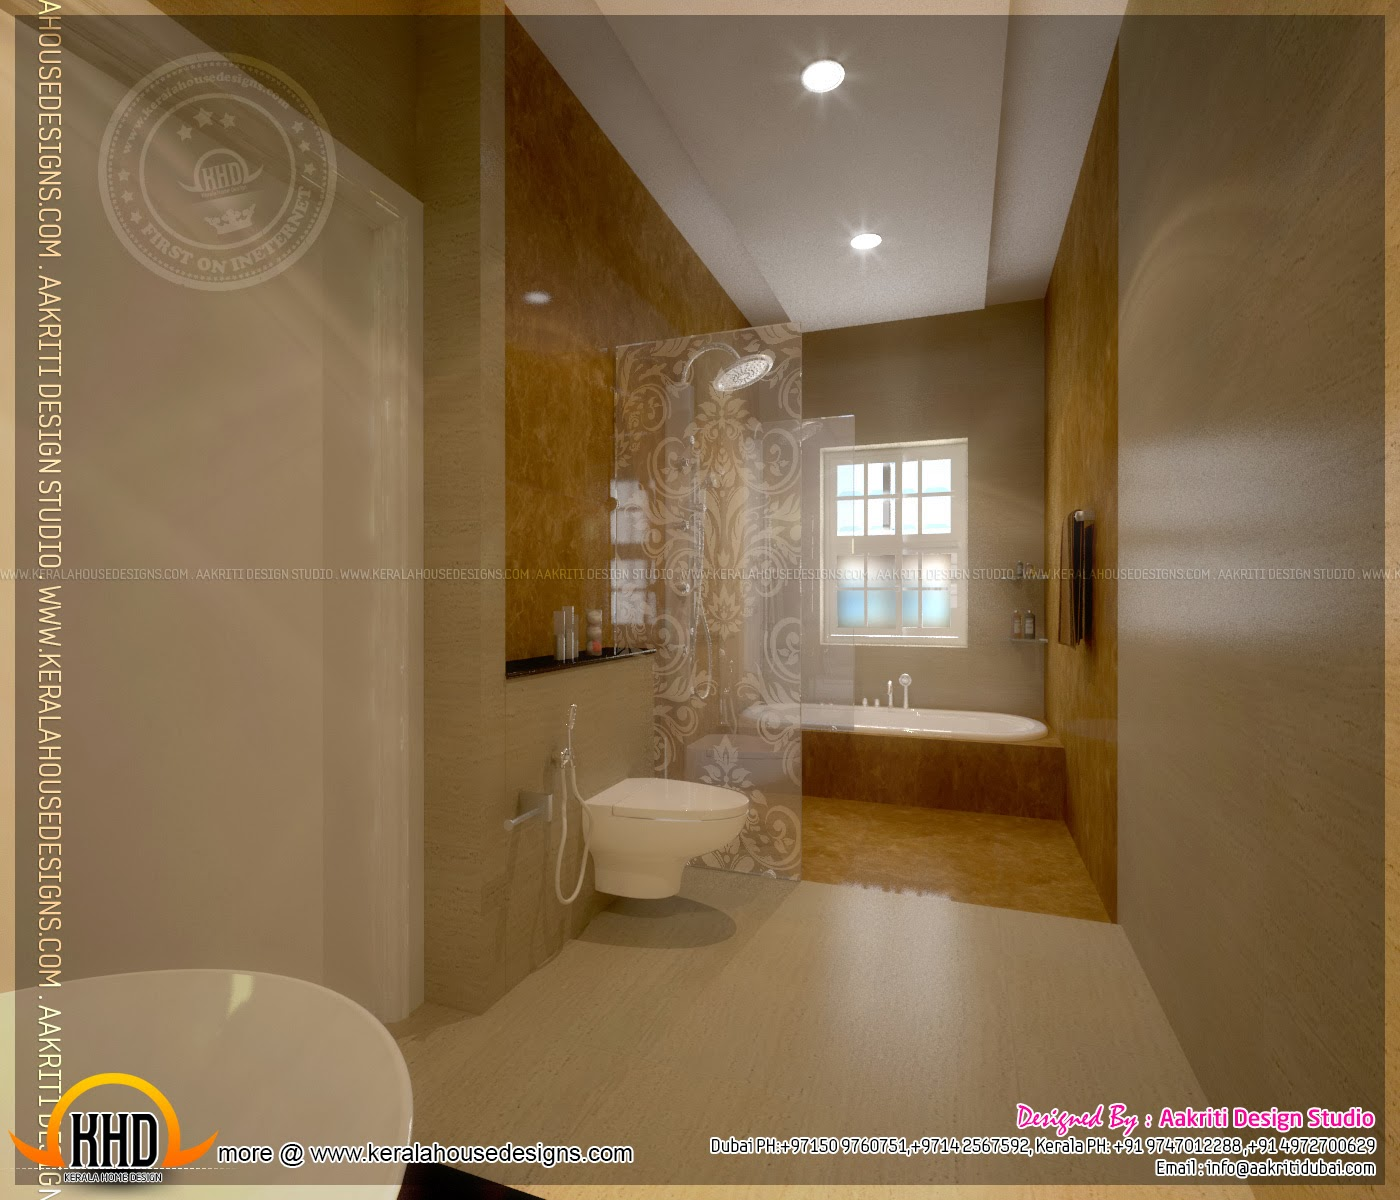 Master bedroom and bathroom interior design kerala home for Bathroom designs in kerala